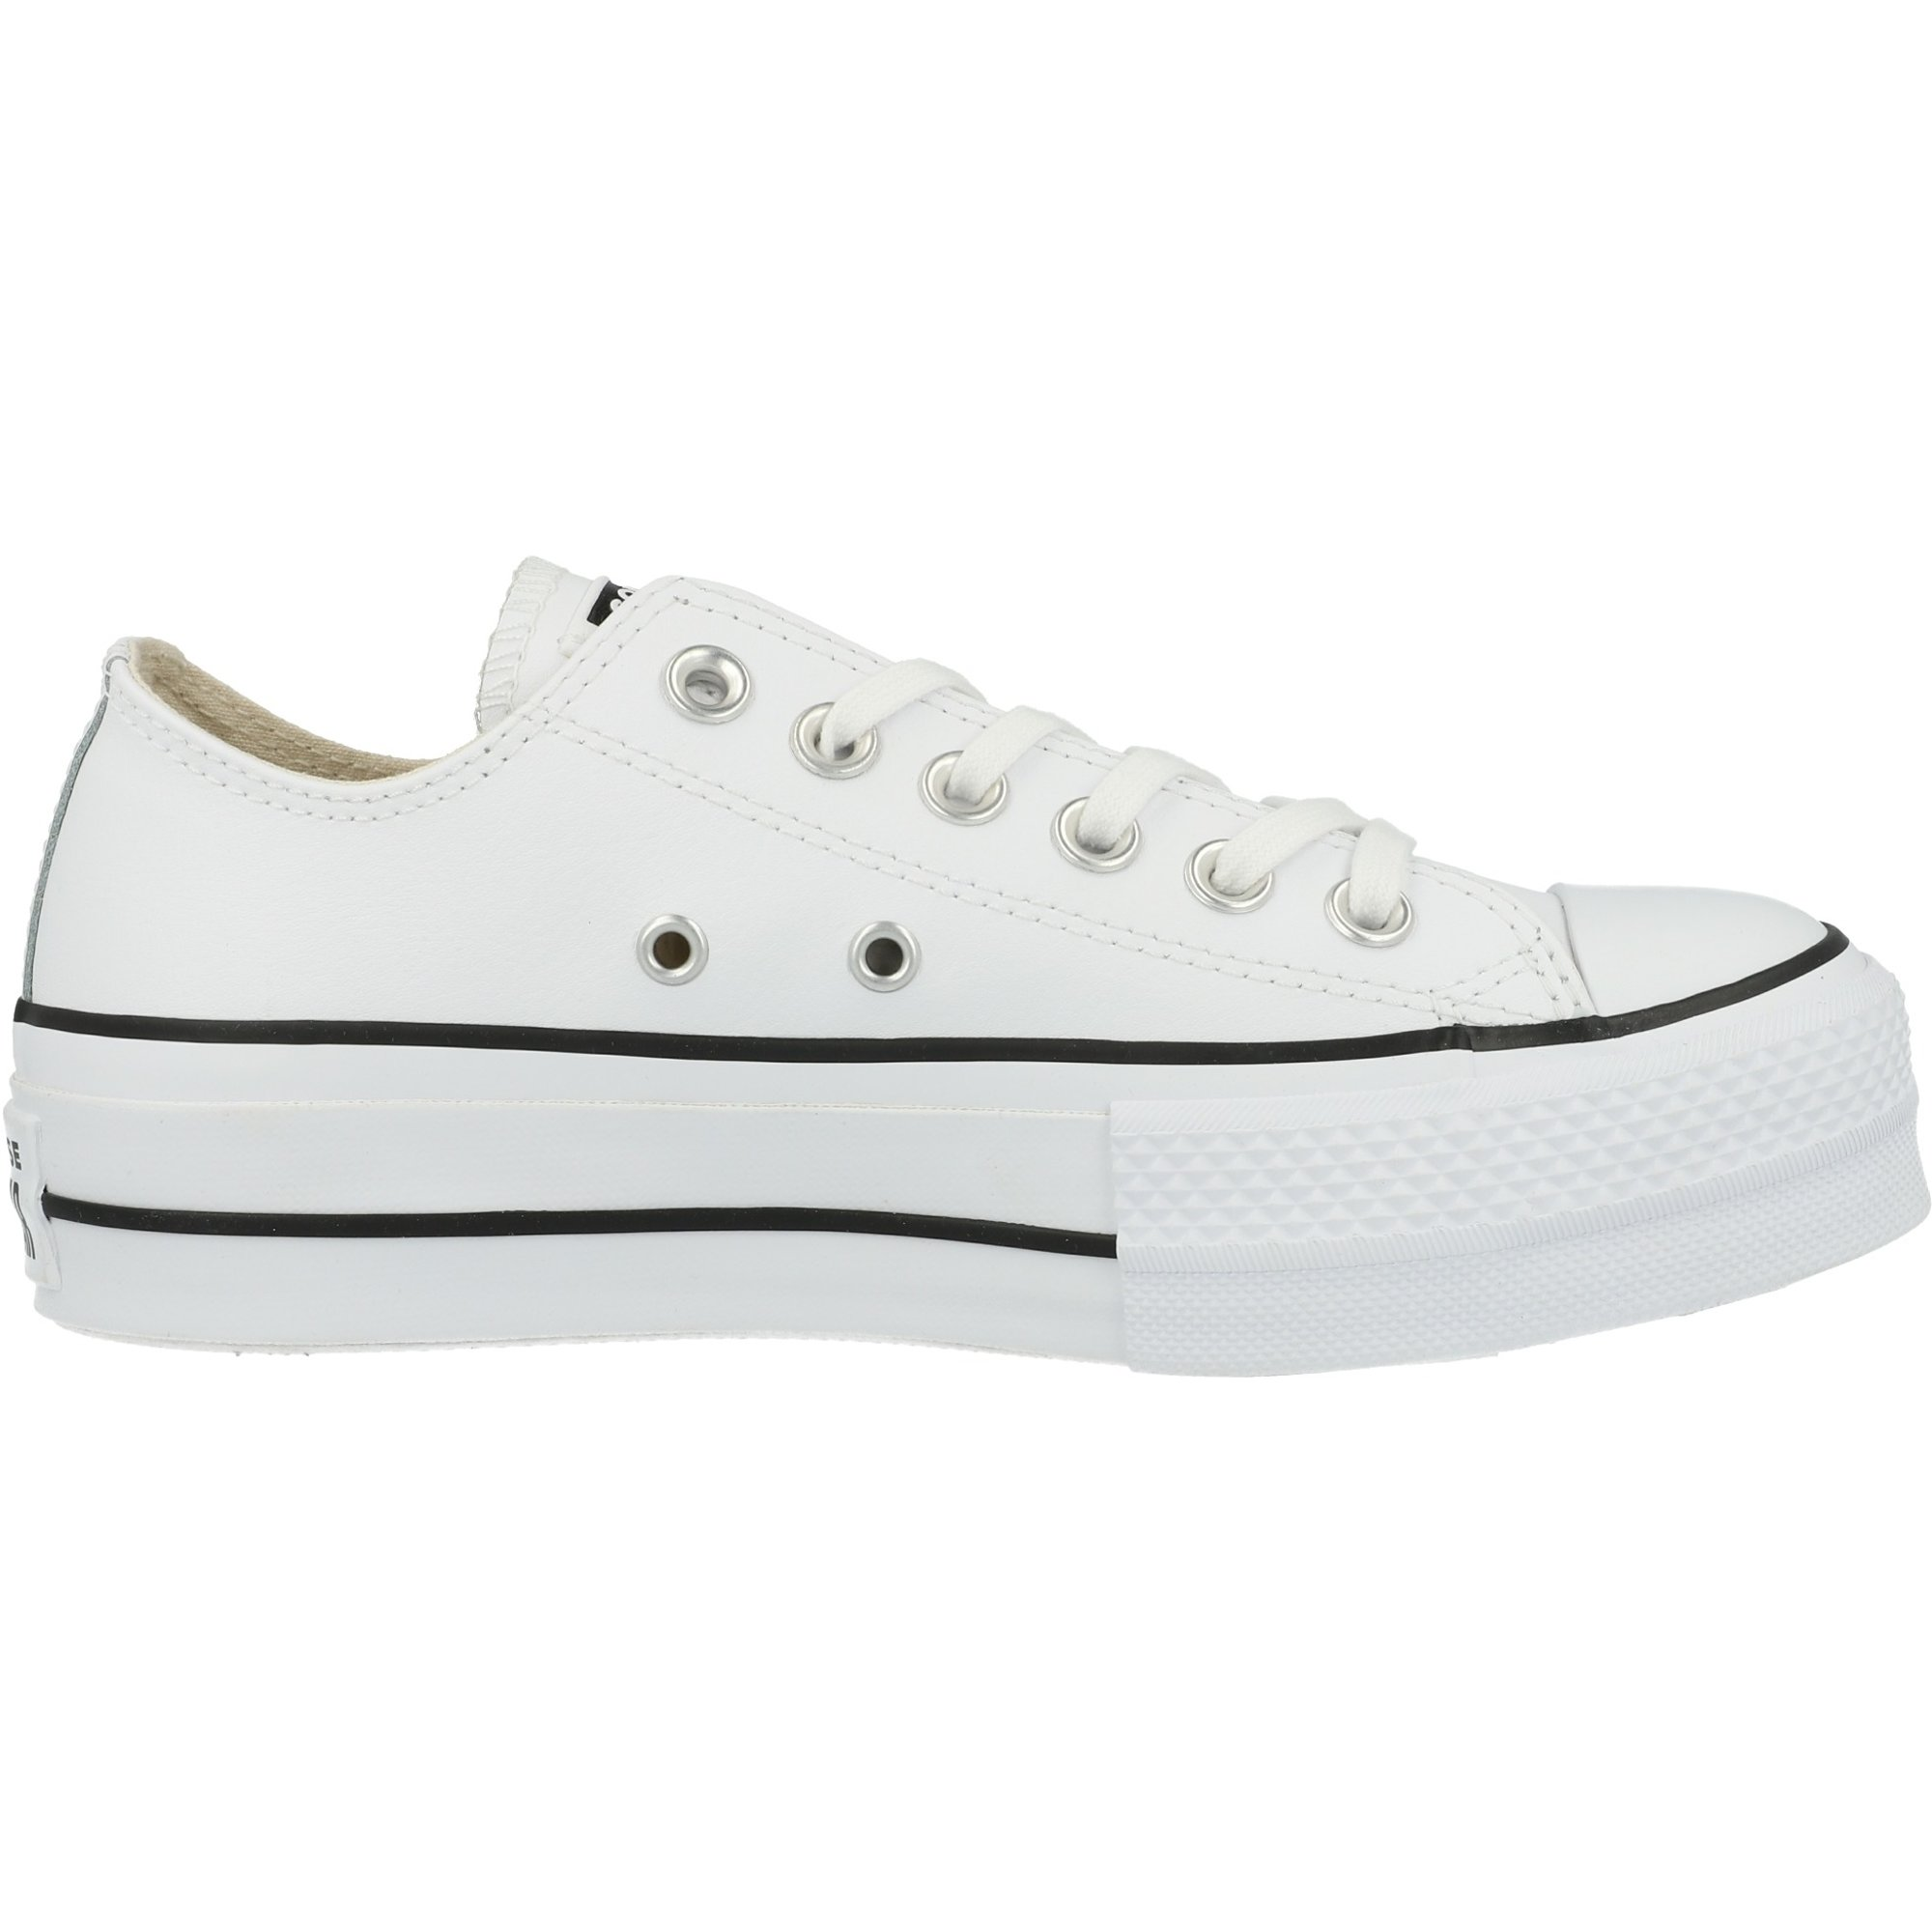 Converse Chuck Taylor All Star Lift Ox Clean White/Black Leather